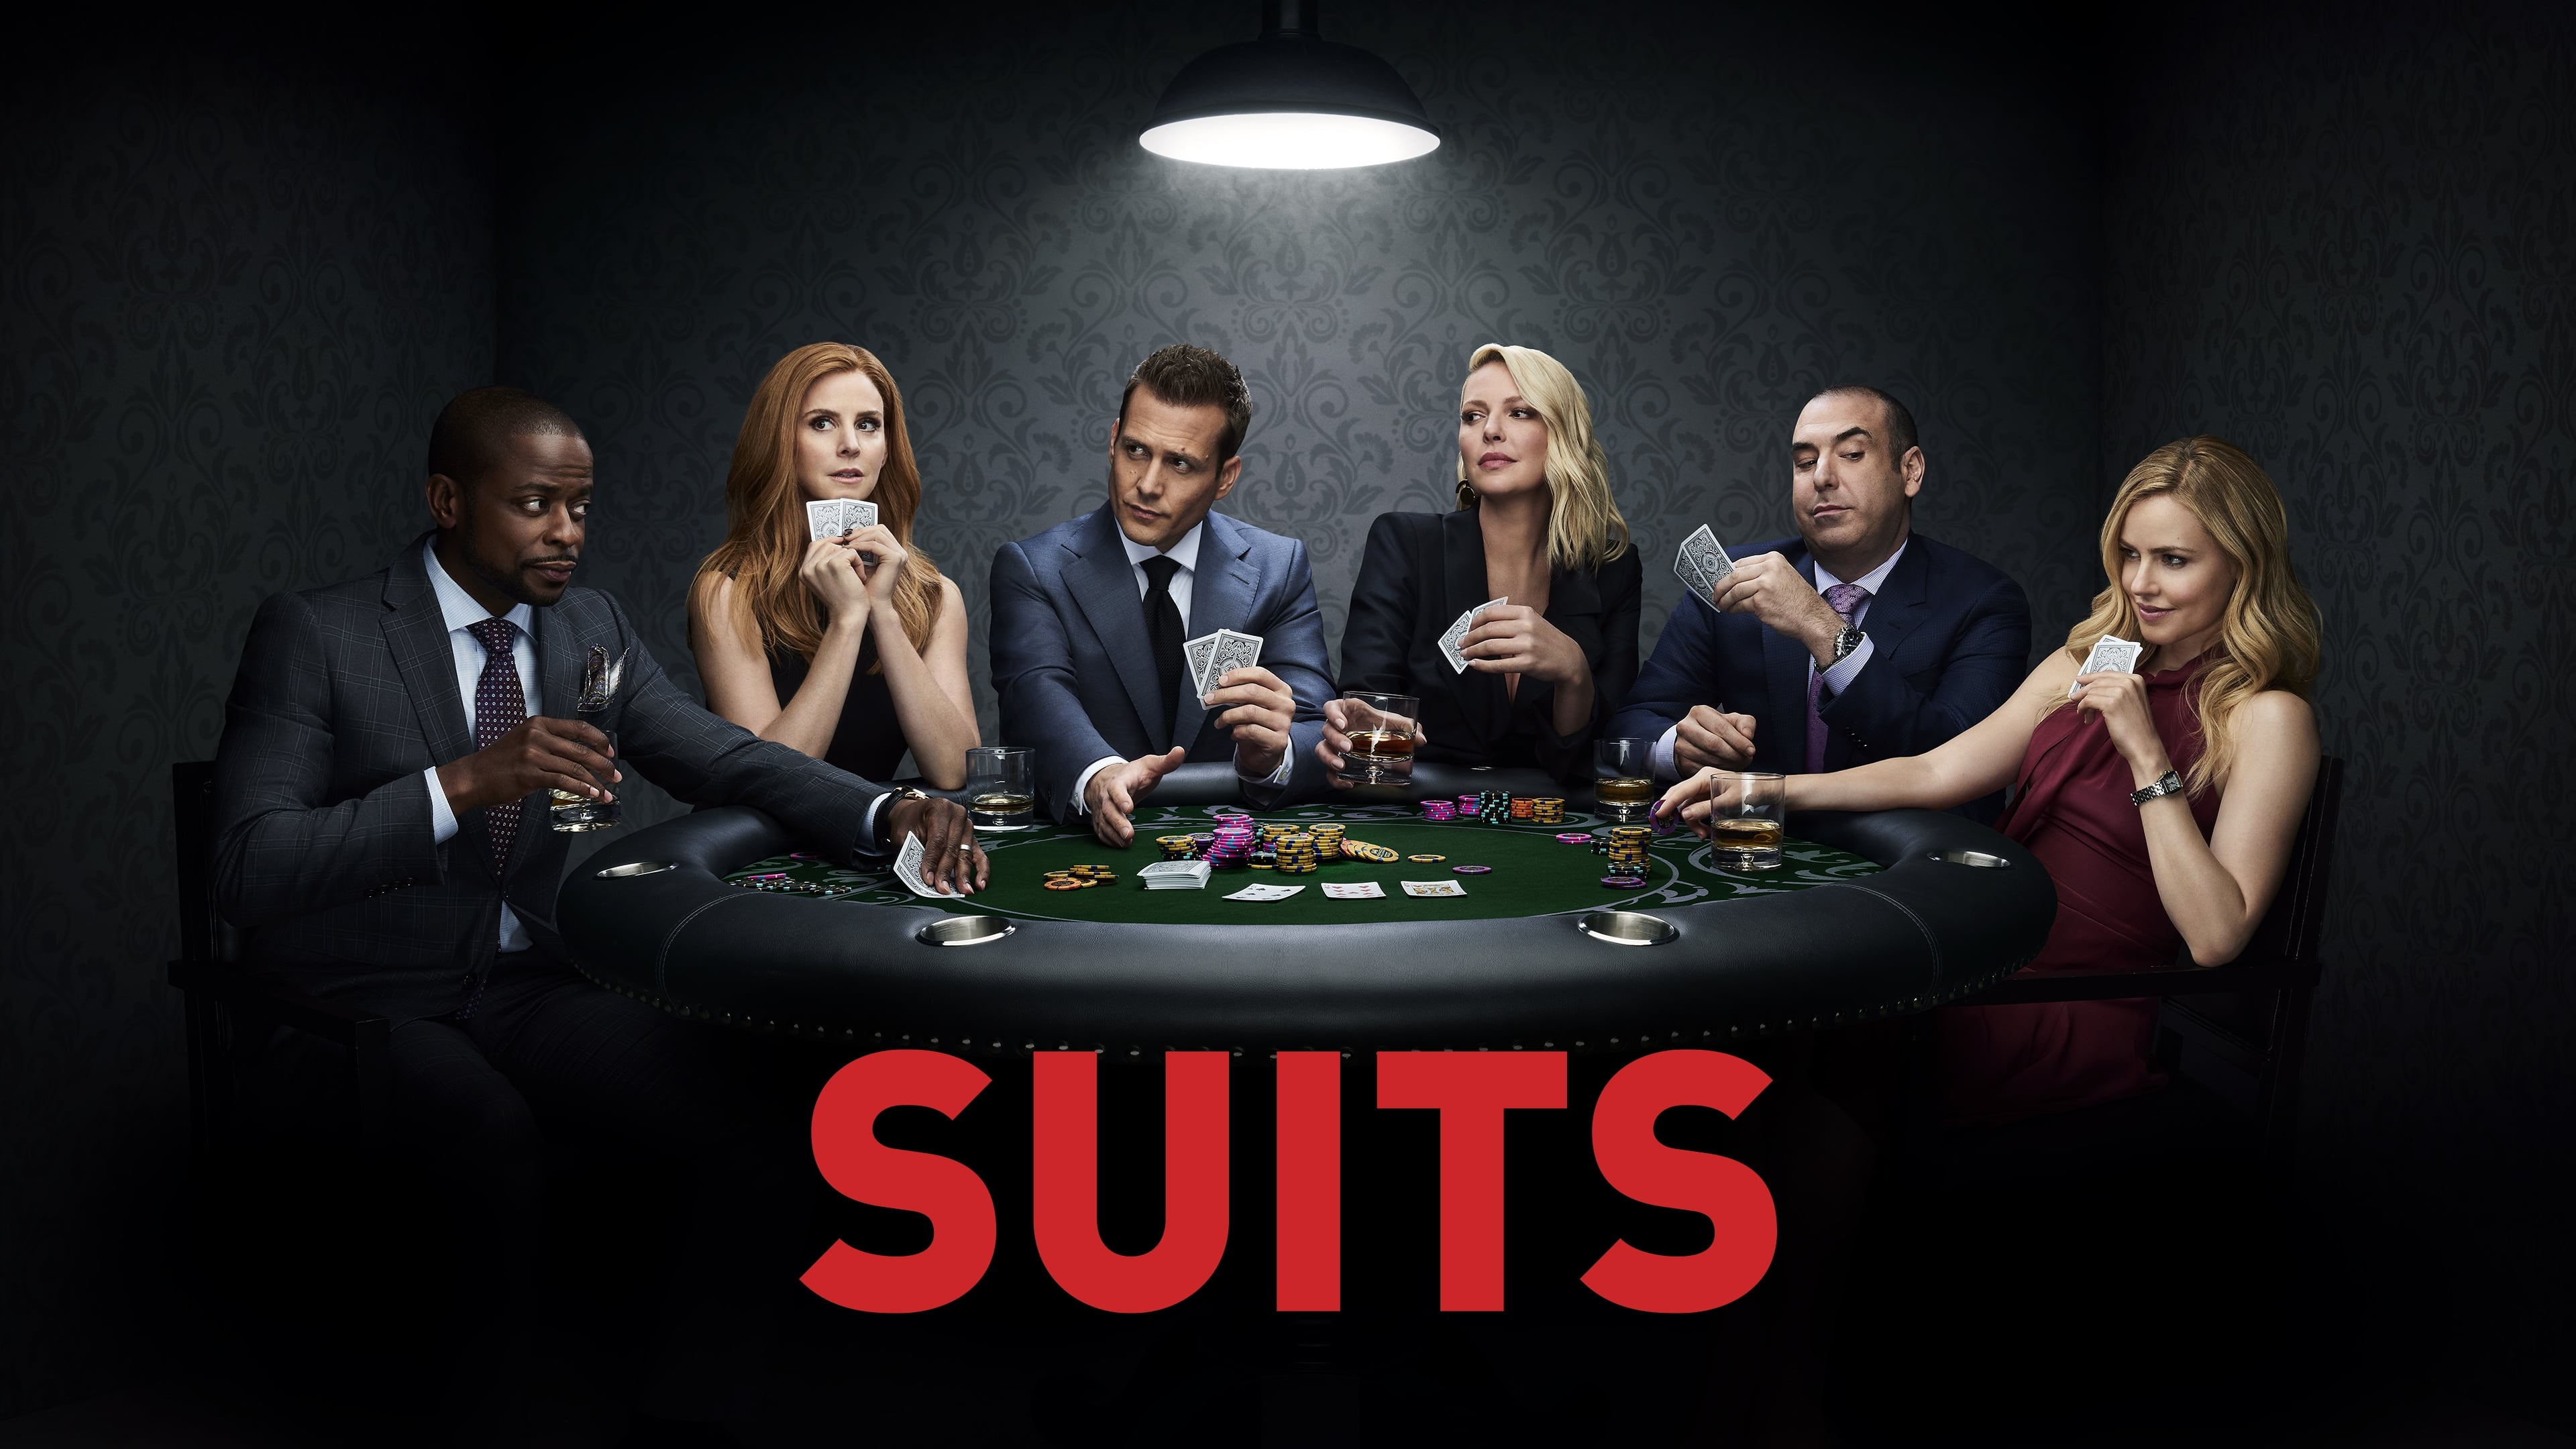 watch suits online free project free tv